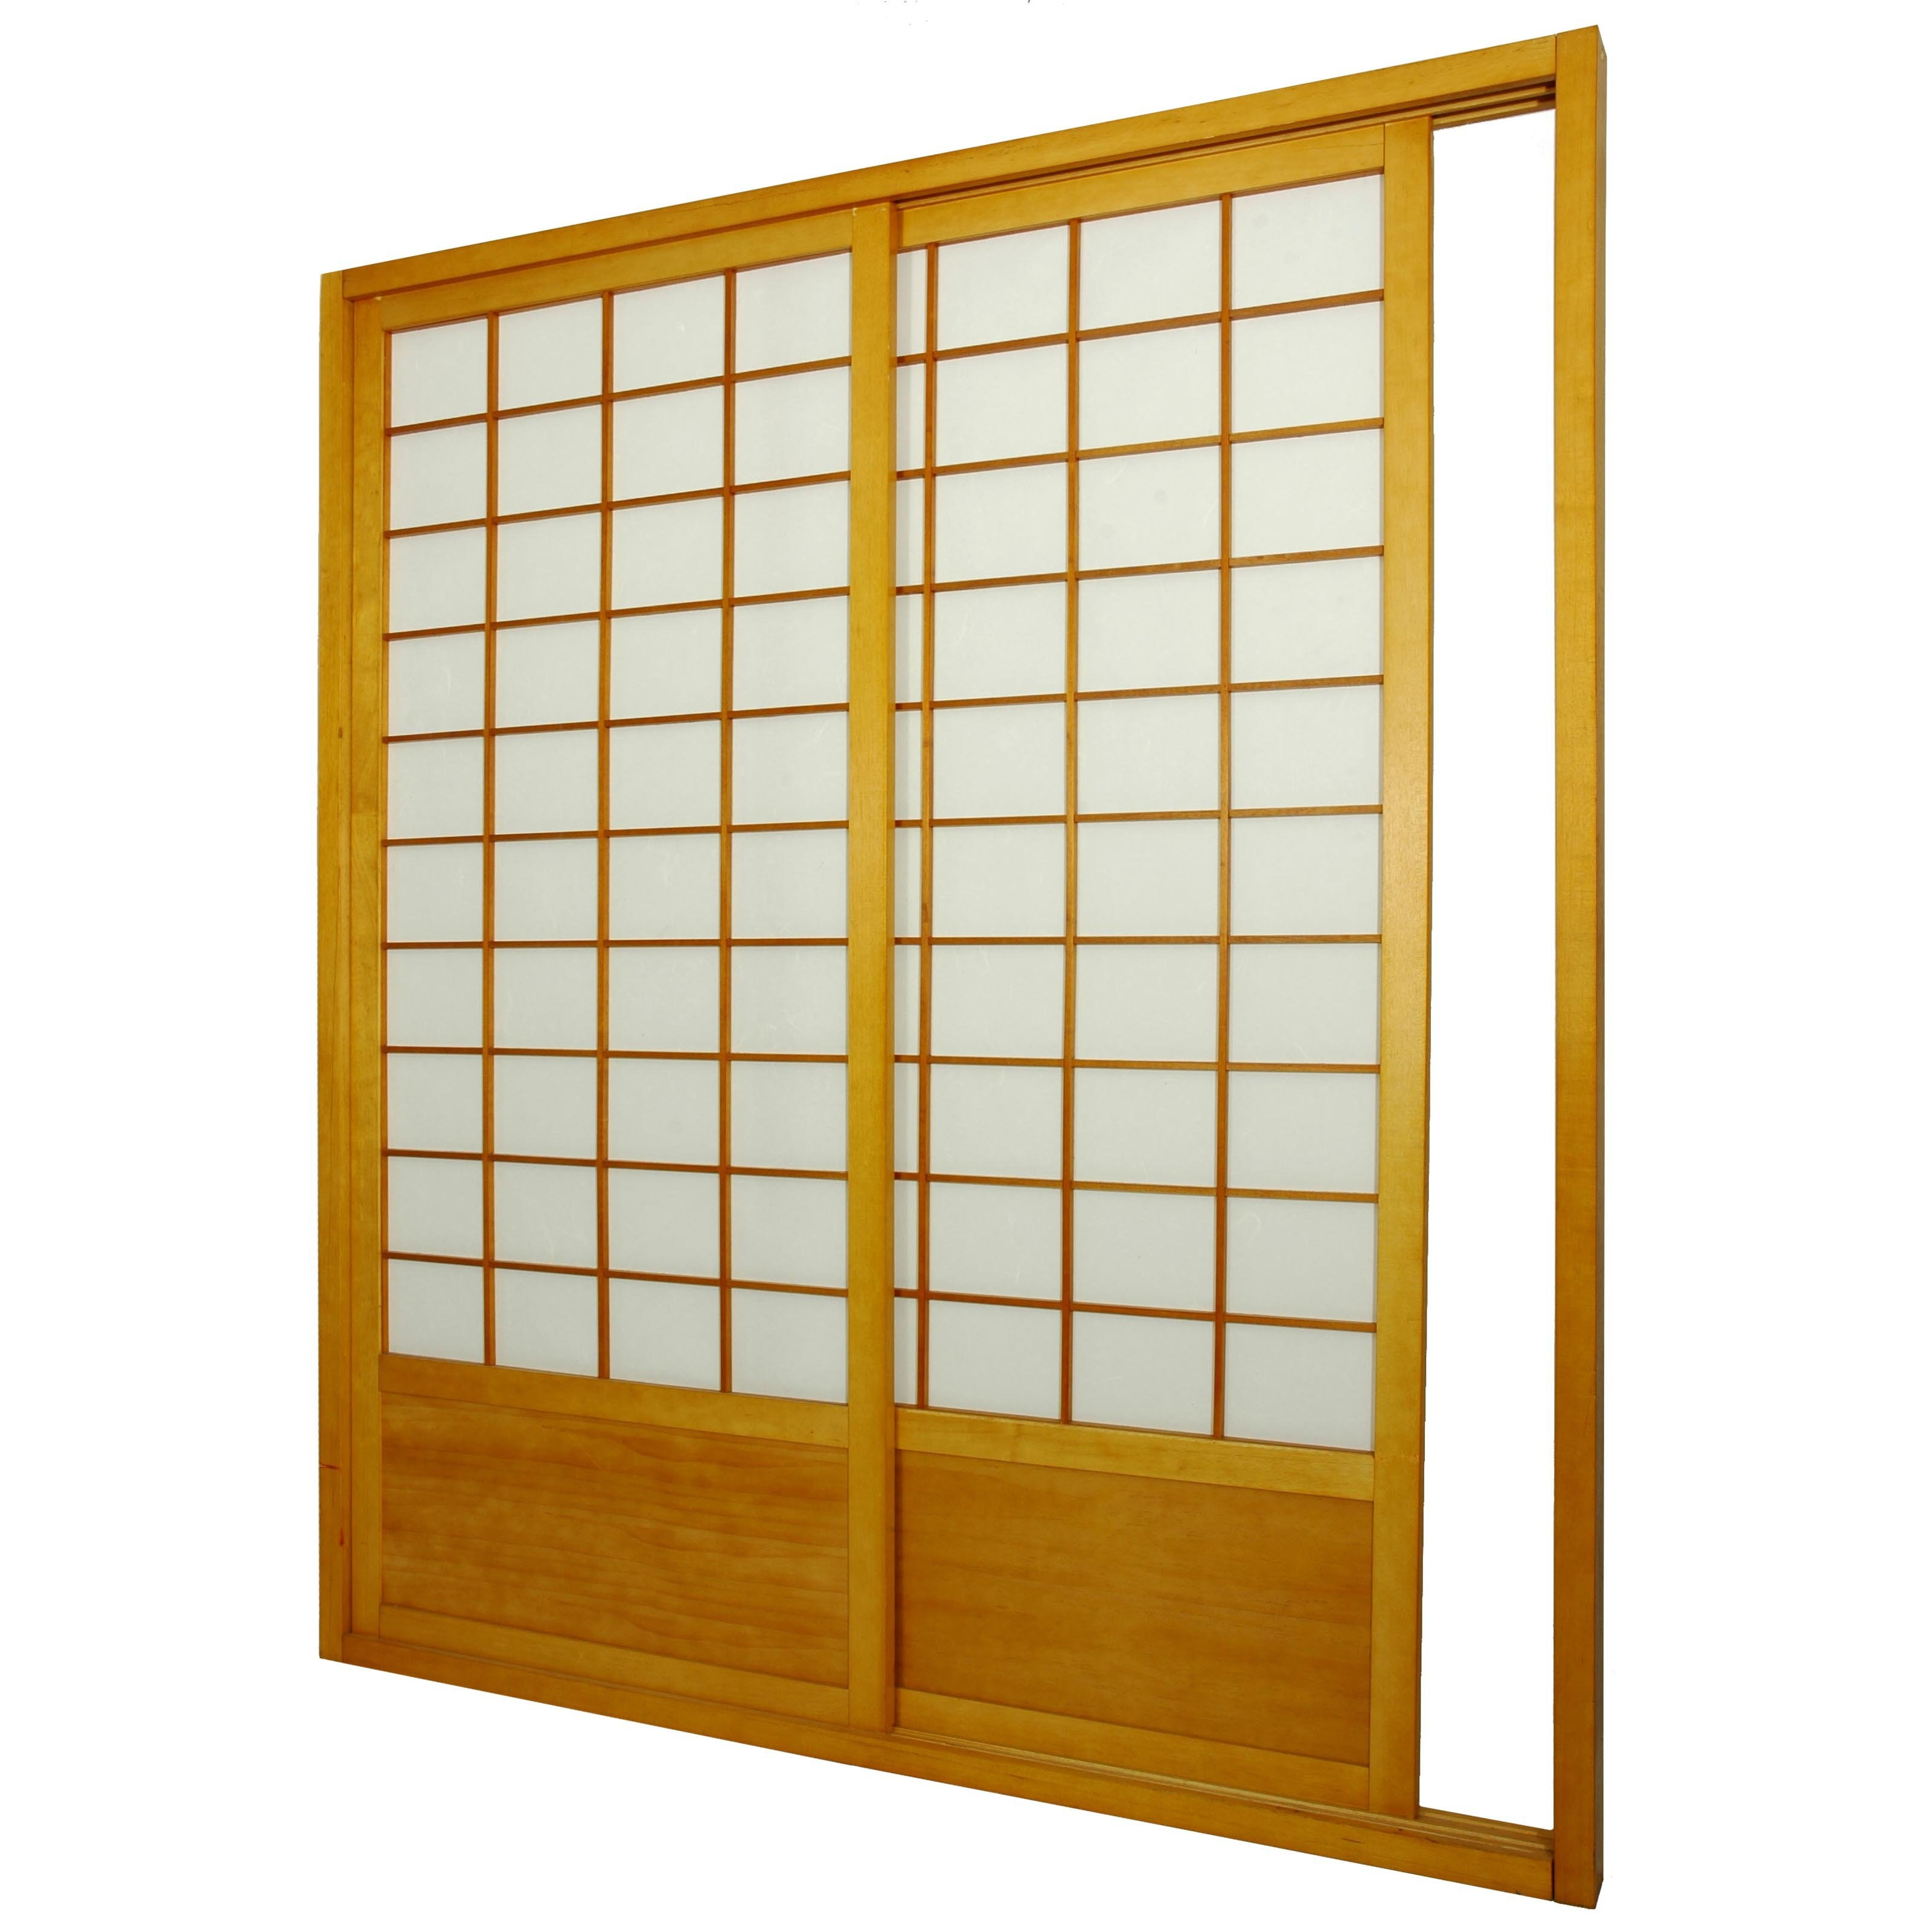 Shoji Sliding Door Kit Room Divideroriental furniture 7 ft zen shoji sliding door kit hayneedle